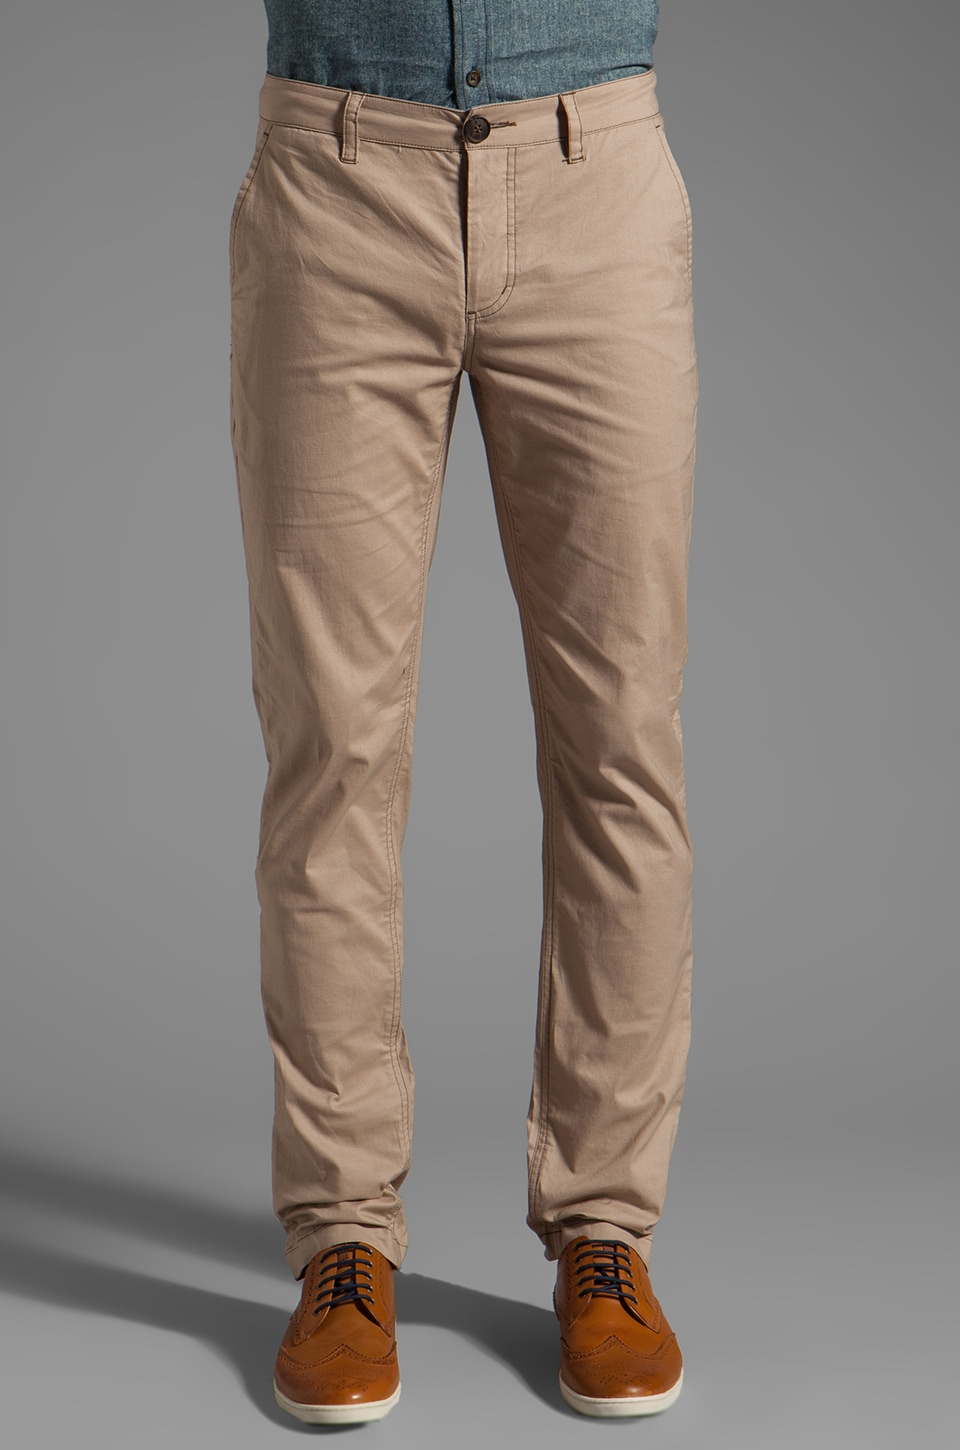 TOVAR Victor Roll Pants in Khaki